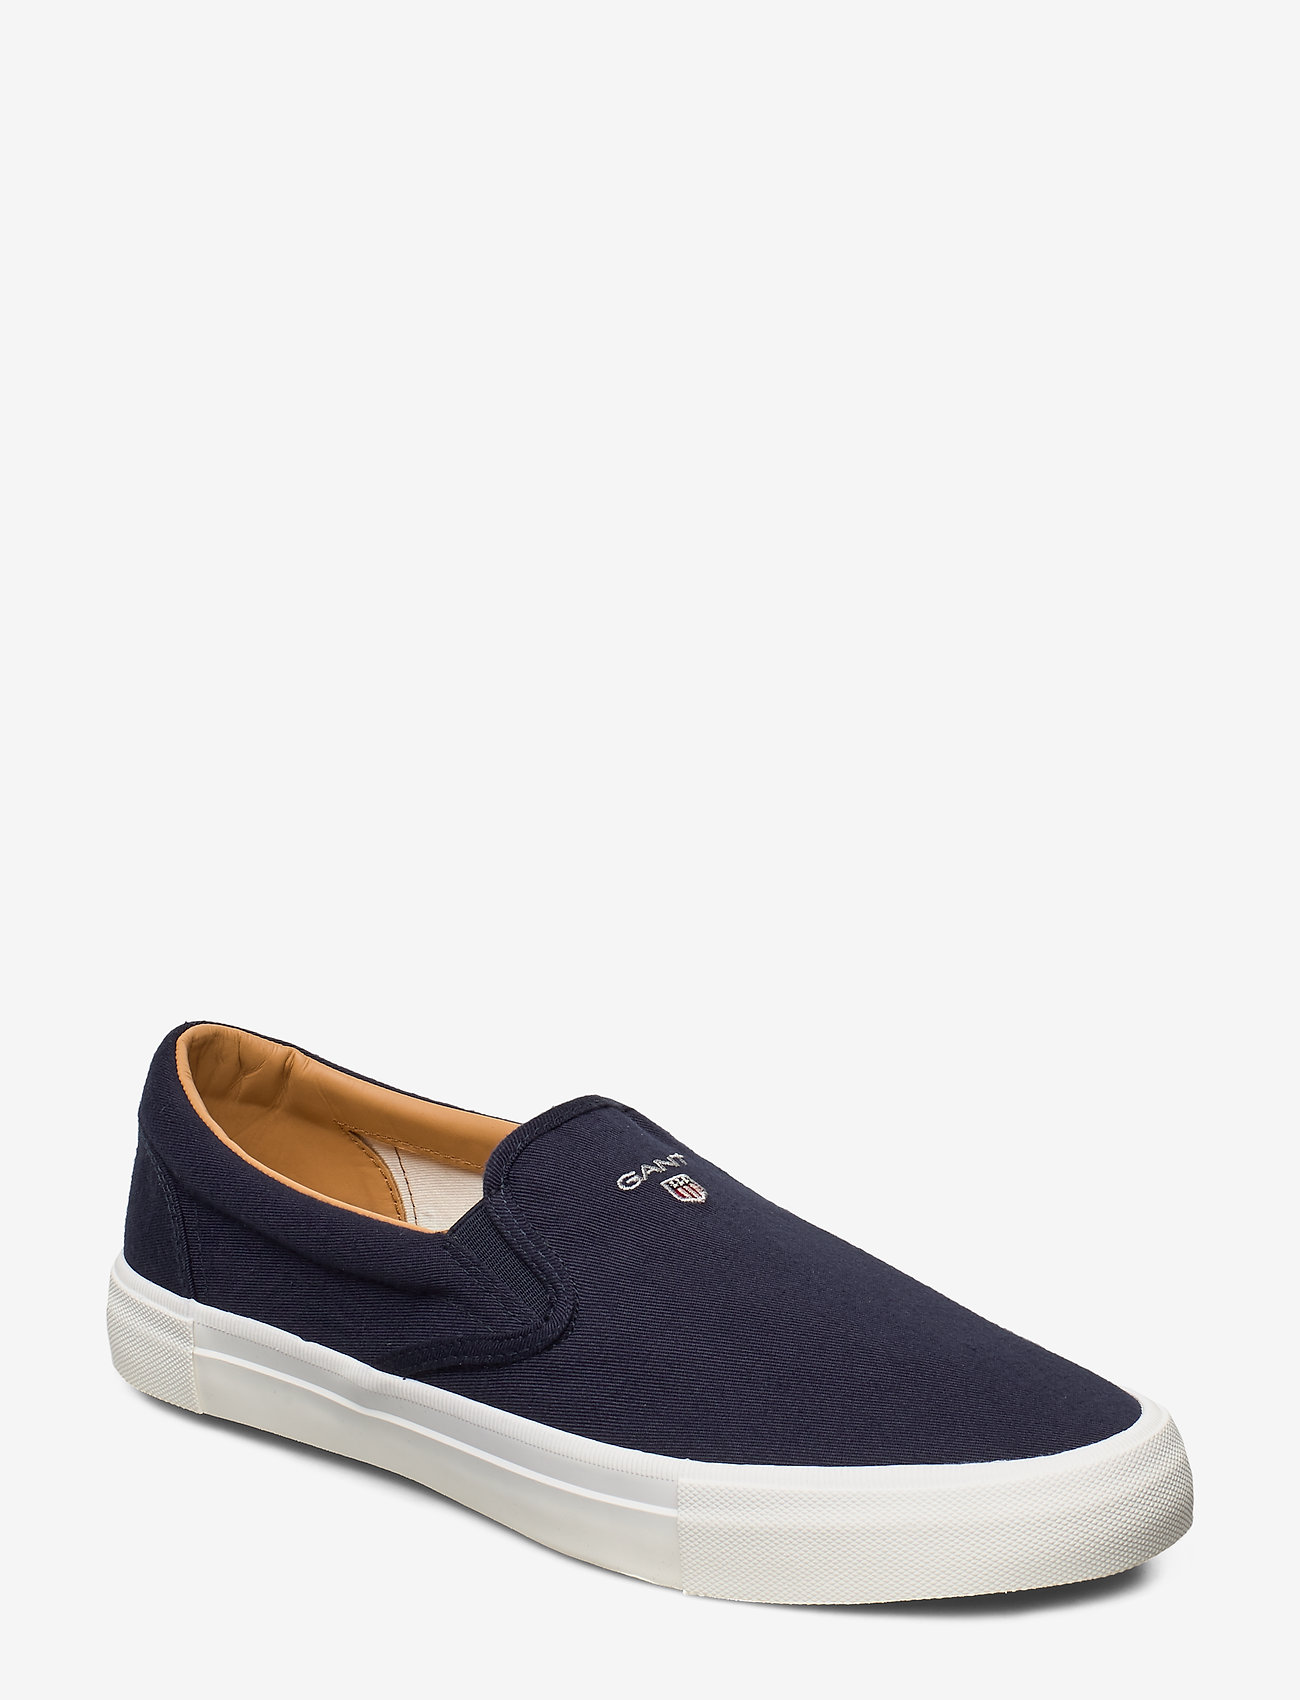 GANT - Sundale Slip-on shoes - baskets slip-ons - marine - 0